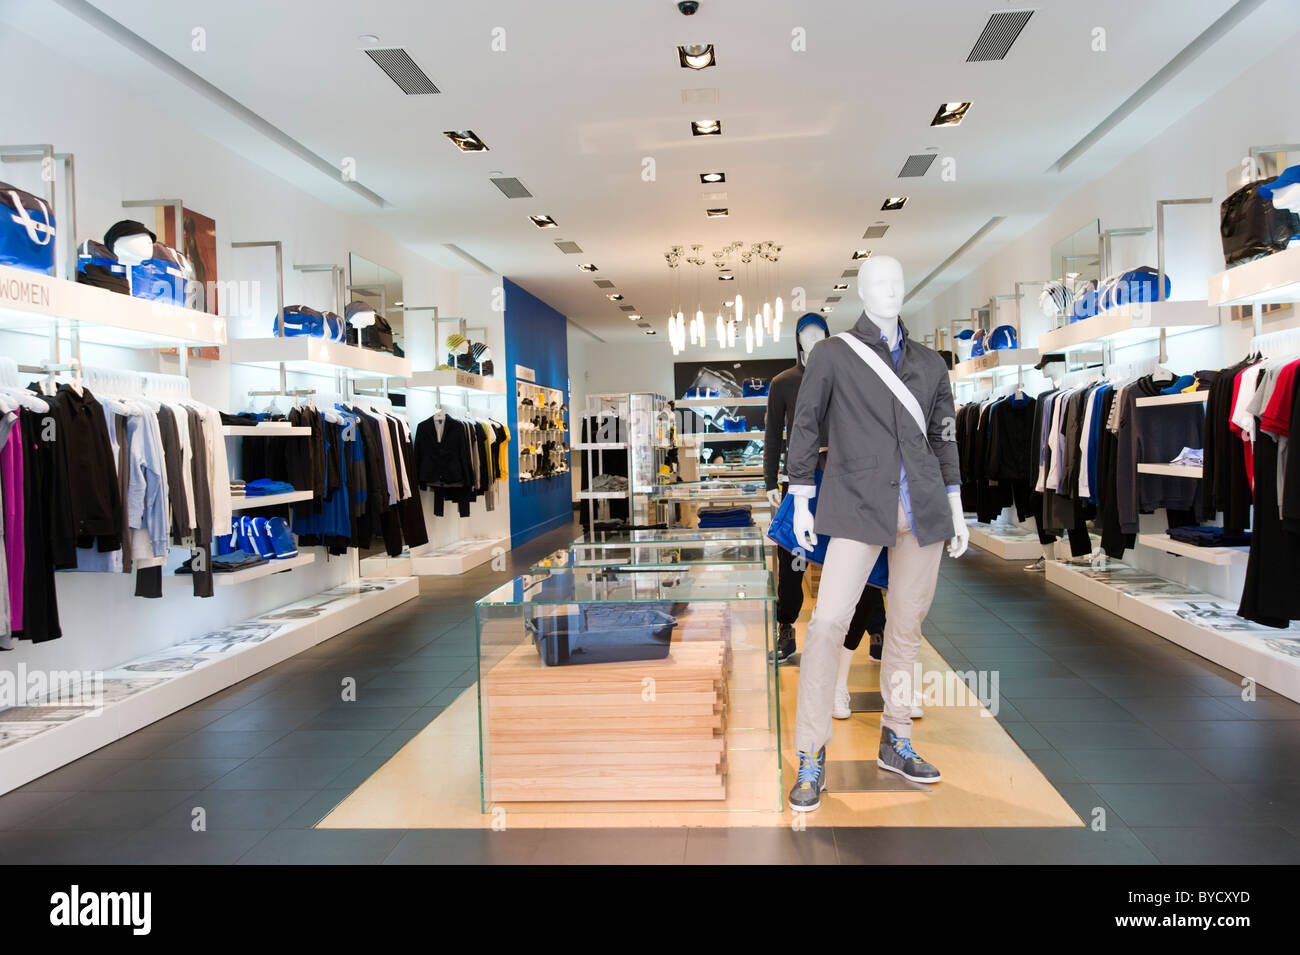 Adidas SLVR clothes shop in SoHo, New York City, USA - Stock Image